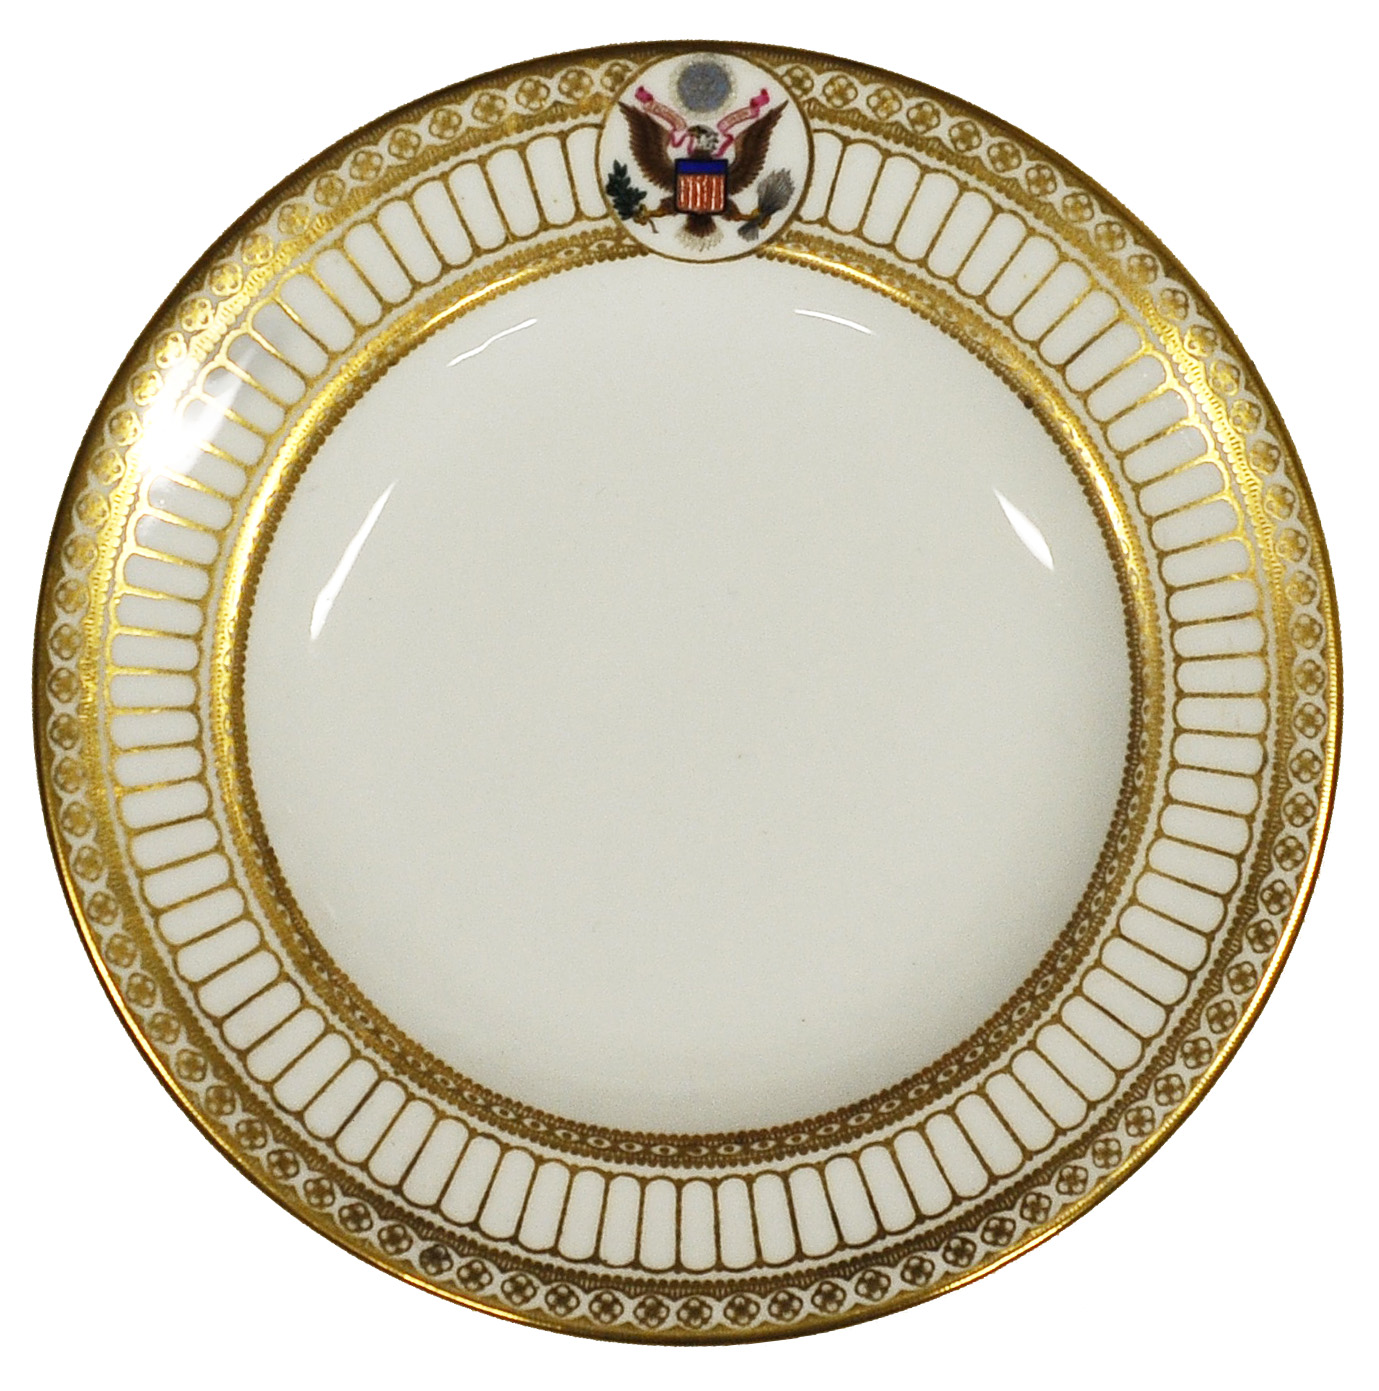 Bread plate from the President Theodore Roosevelt White House dinner service, 1903, designed by John Goodwin (English, 1867-1949) and Herbert A. Cholerton (English, 1883-1955), Wedgwood (est. 1759), Stoke-on-Trent, England, bone china, 6 inches diameter. Collection of the Art Fund, Inc. at the Birmingham Museum of Art; The Buten Wedgwood Collection, gift through the Wedgwood Society of New York 4510.2008